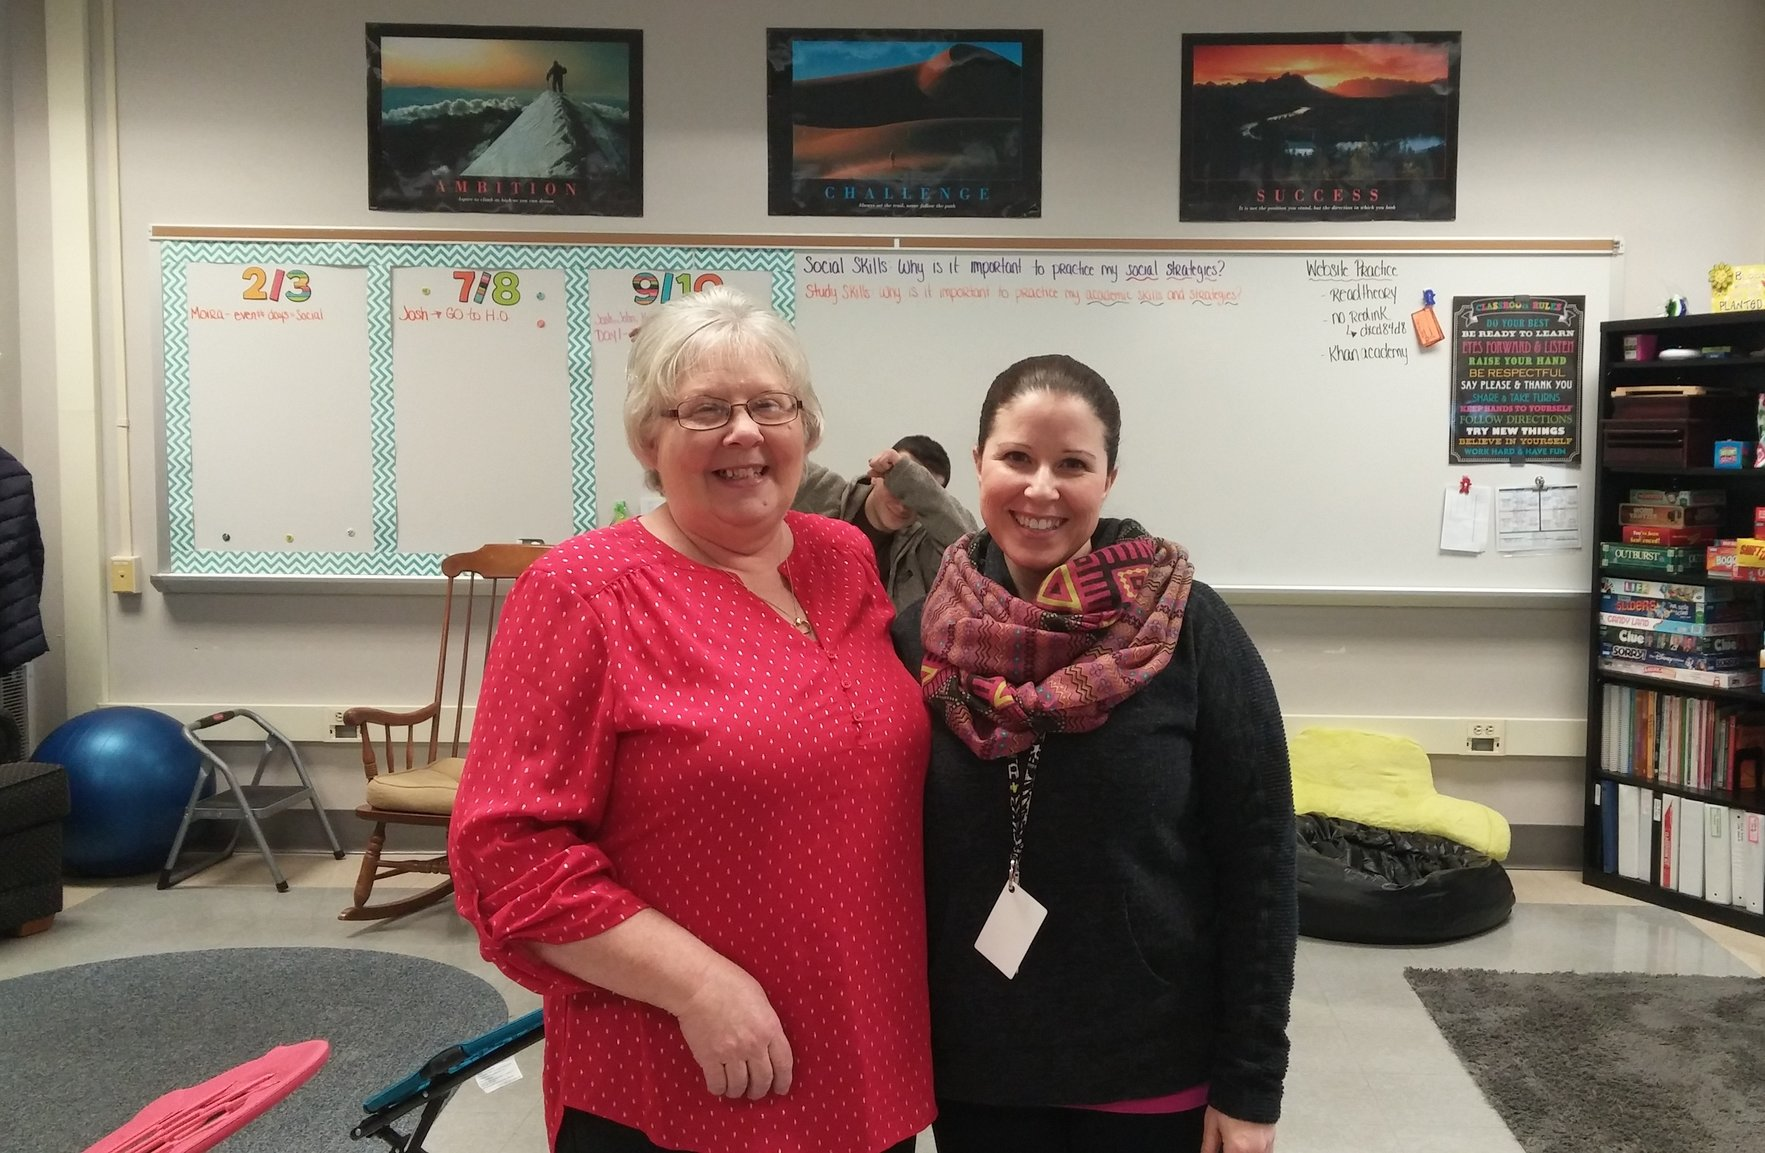 Deborah Bosley spends her last day at Susquehannock with her daughter, Christine Bosley. Photo by: Ariel Barbera